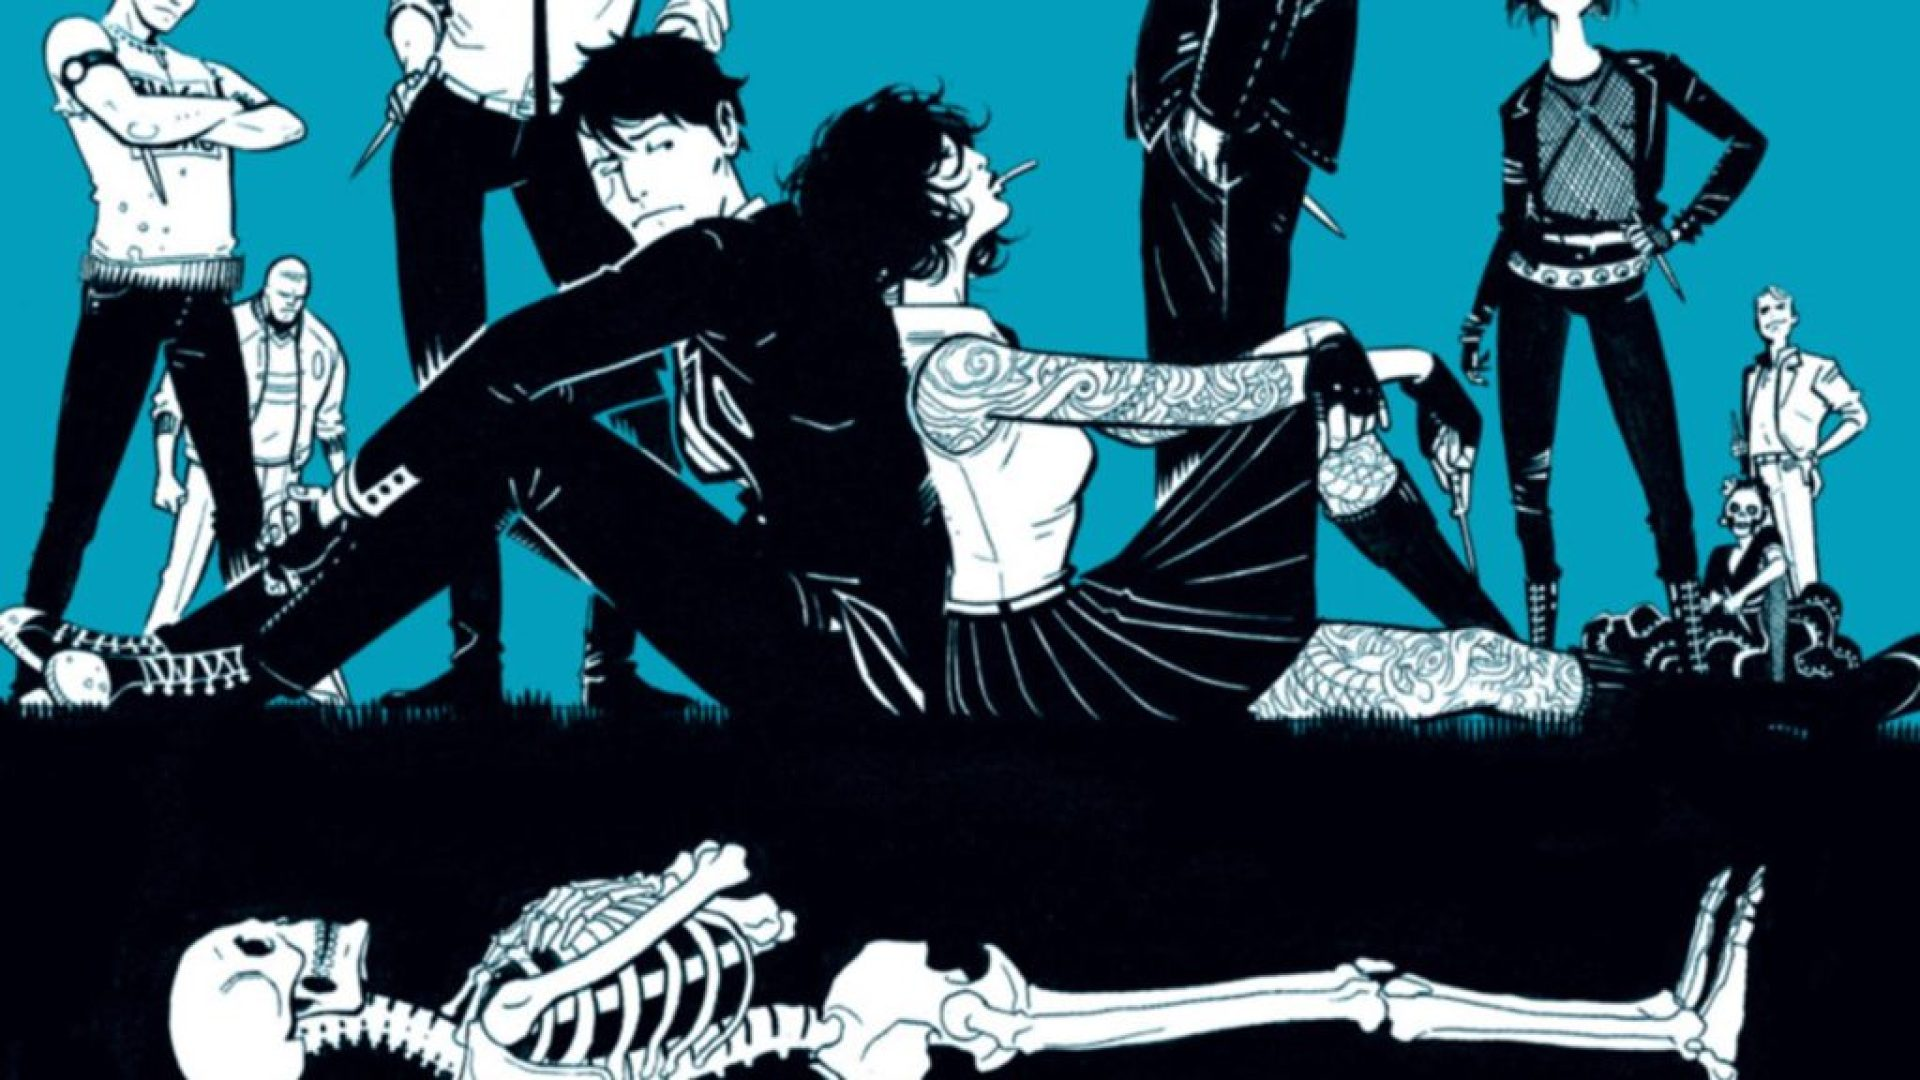 Deadly Class by Rick Remender and Wes Craig